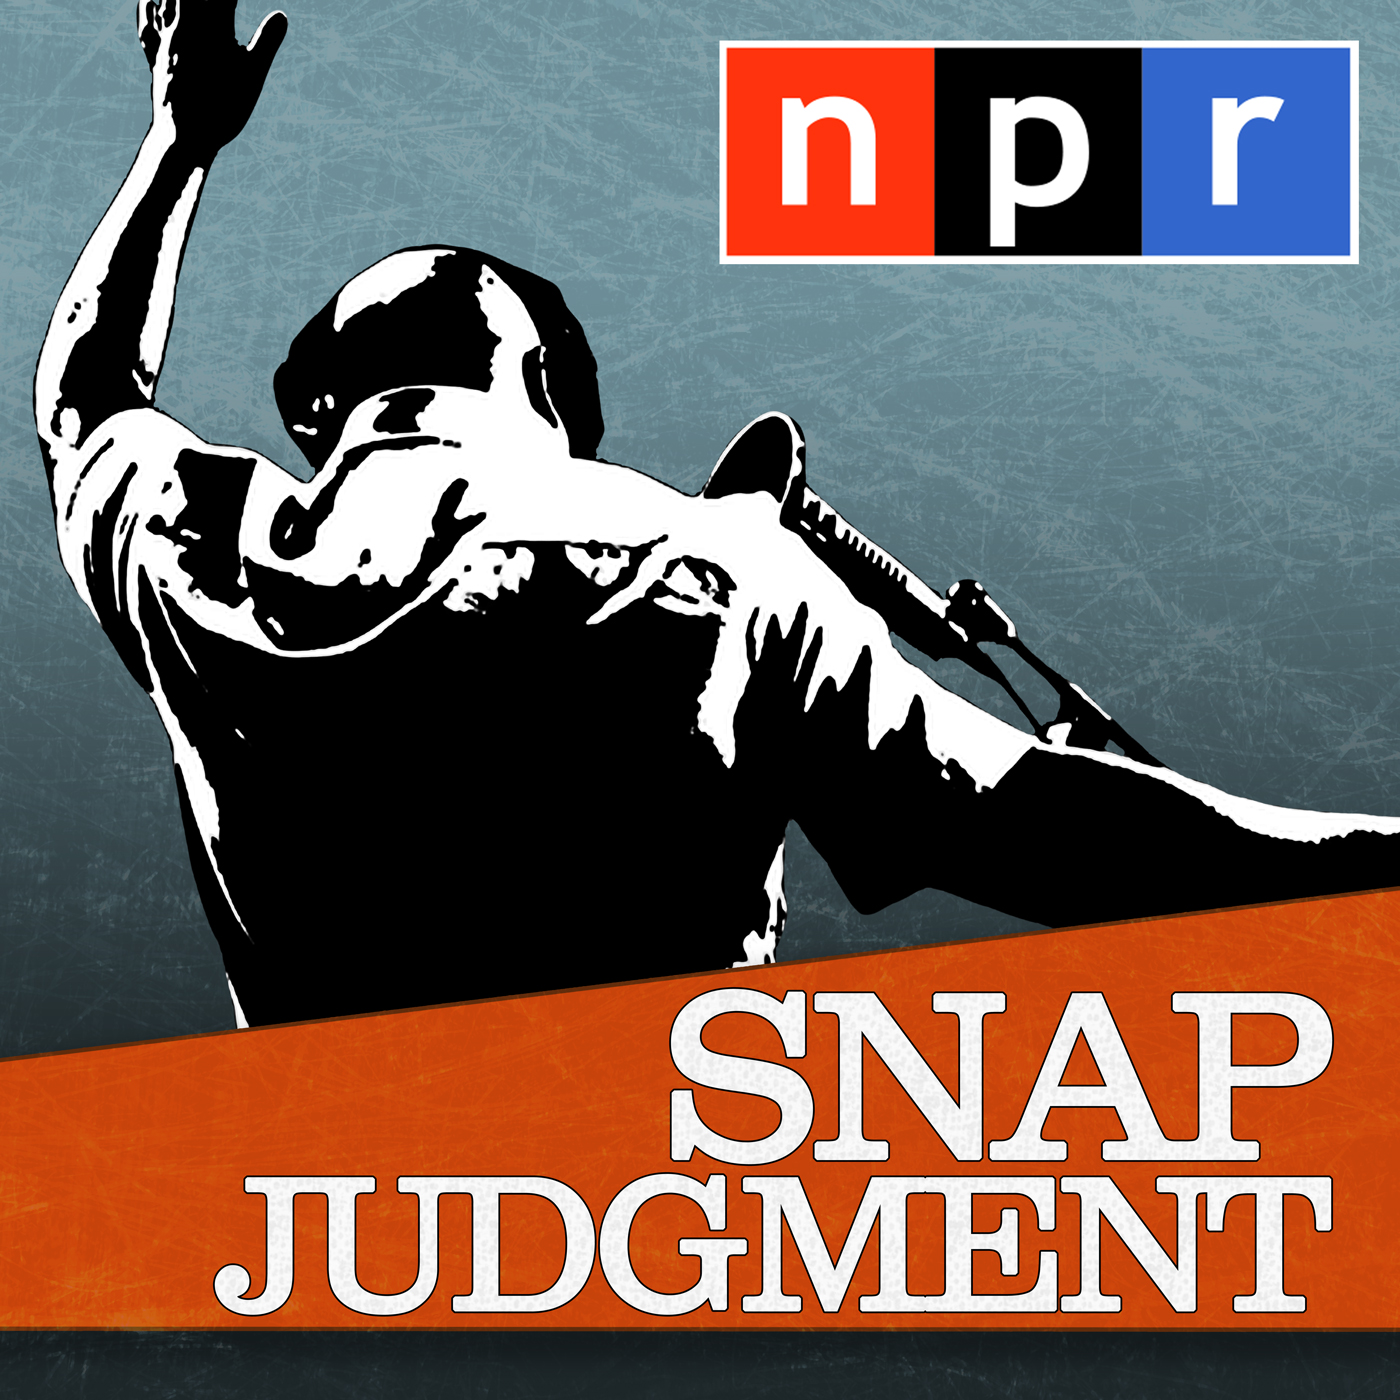 NPR: Snap Judgment Podcast